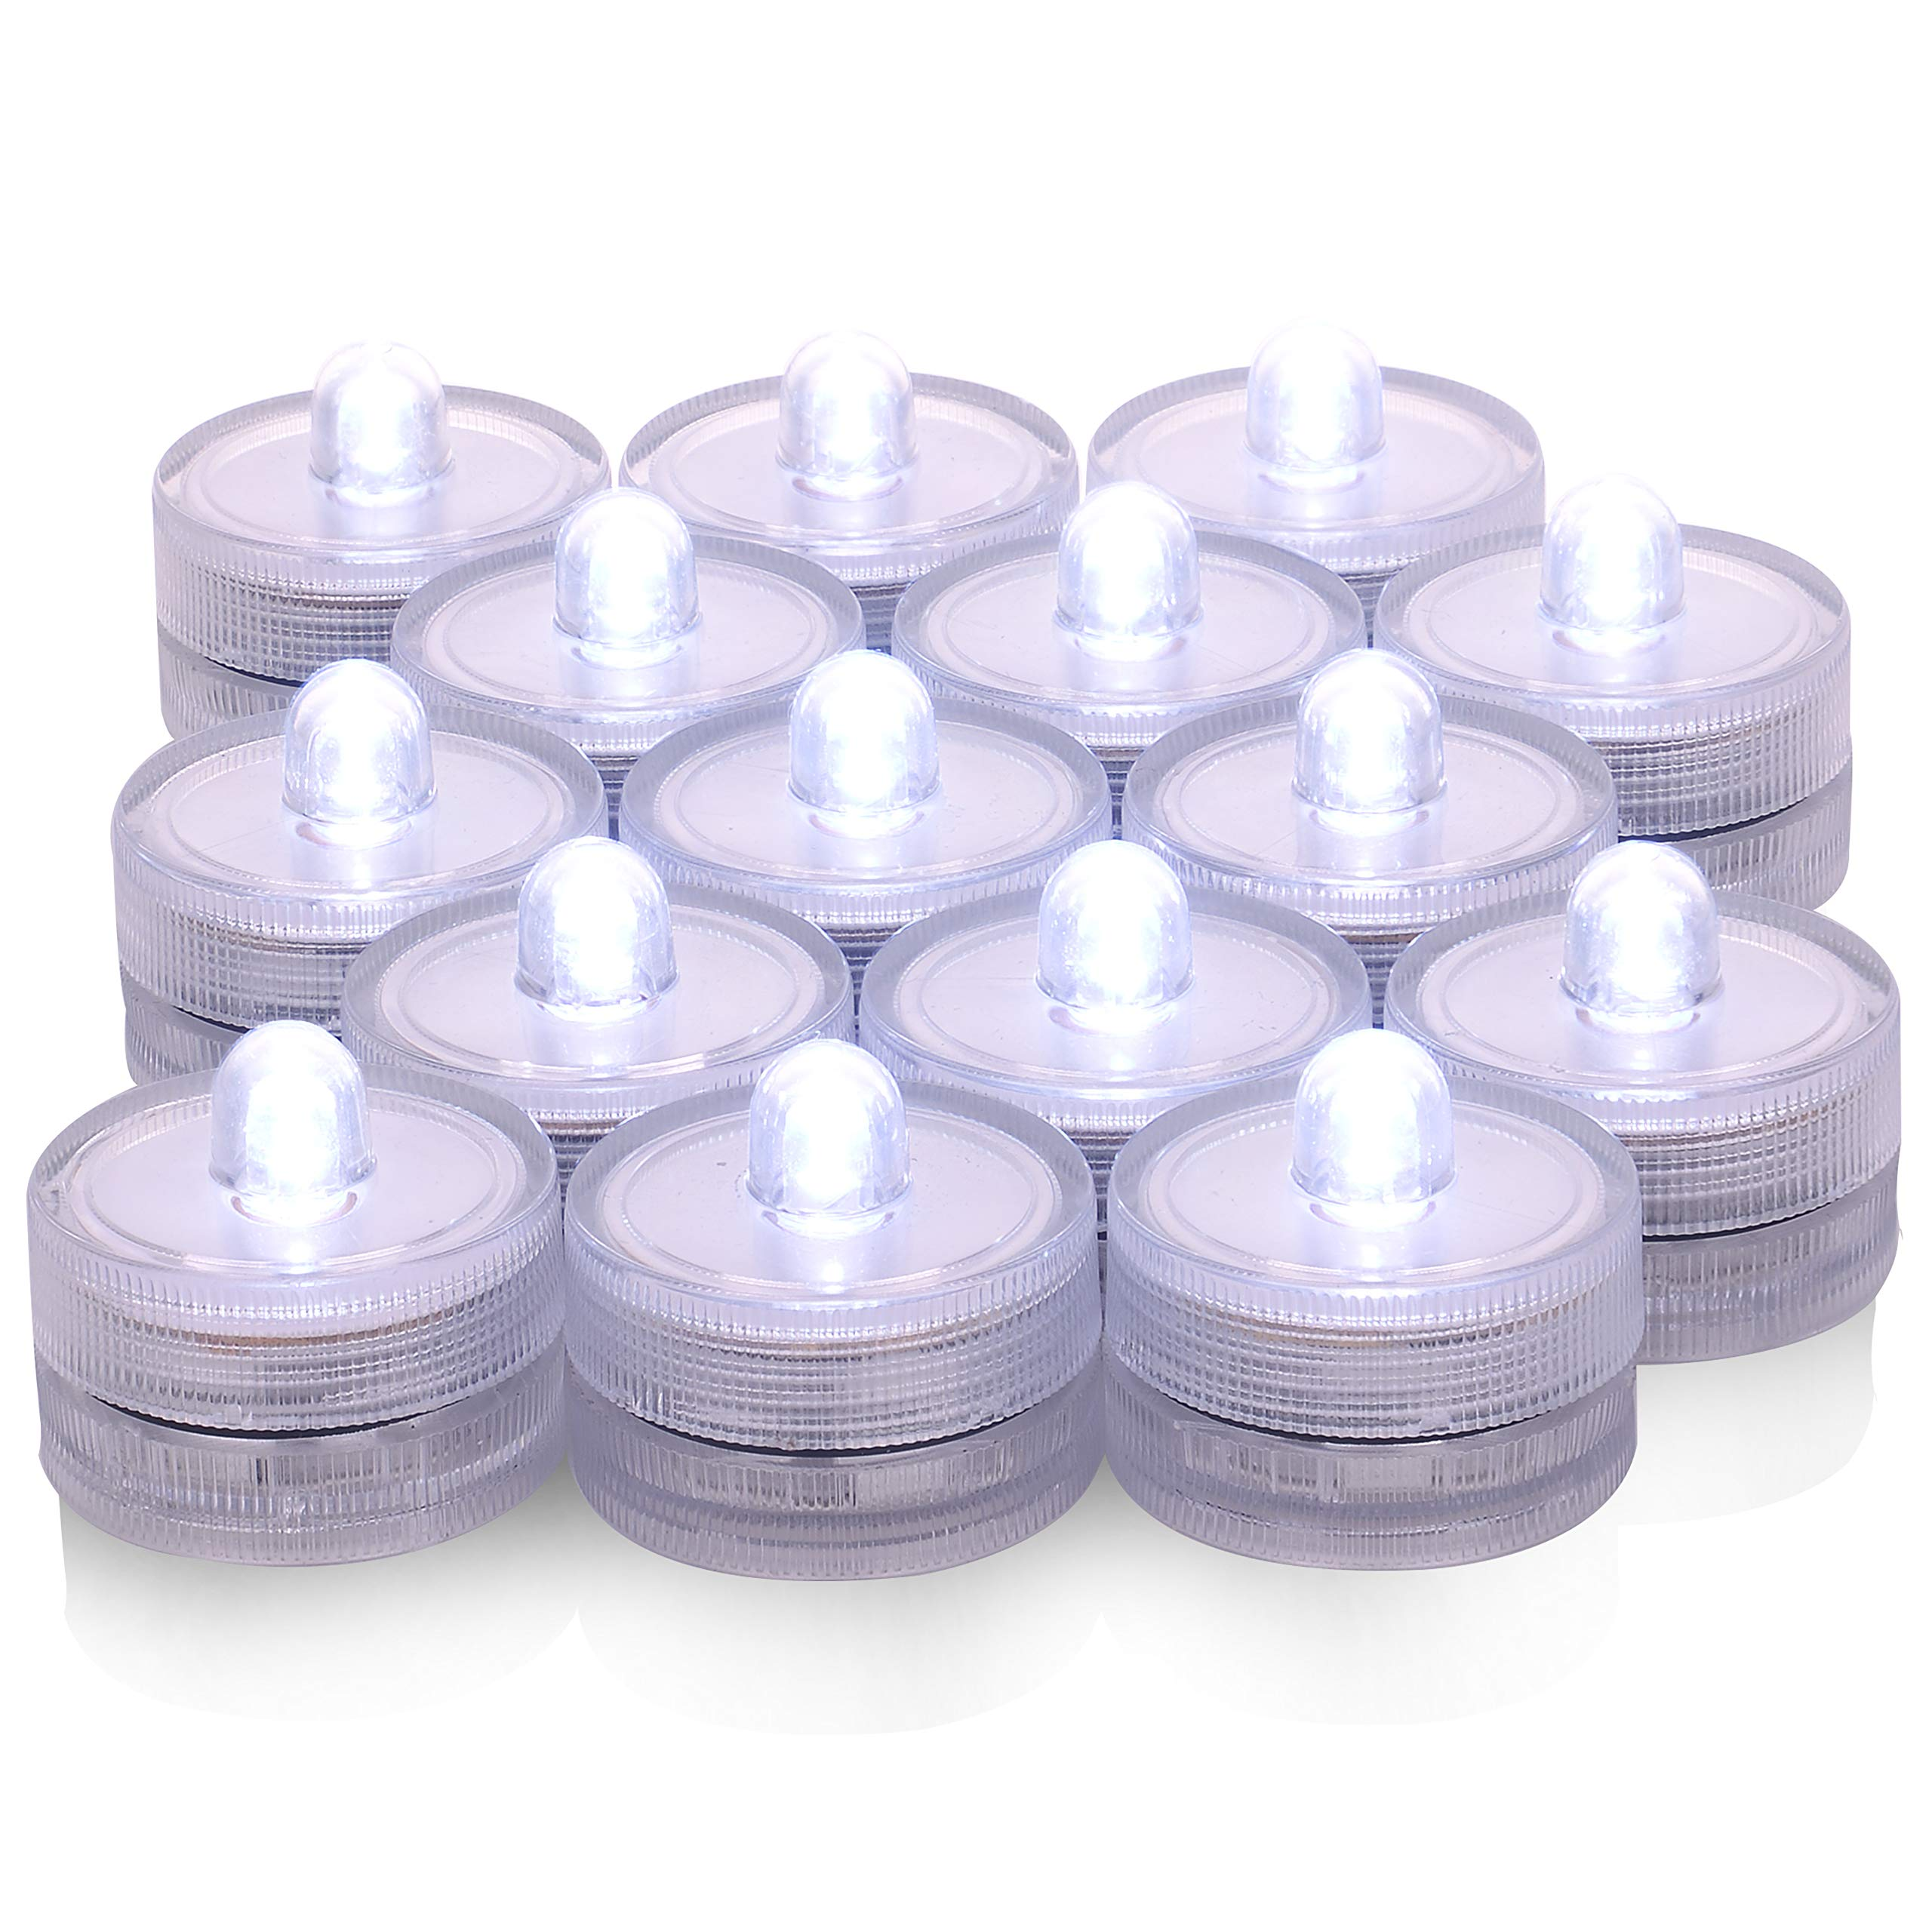 36 Pack Waterproof Wedding Underwater Battery Sub LED Lights Seasonal & Festival Celebration Flameless LED Tea Light White,in SPA, Bathroom, Restaurants, Wedding, Party, and Festival Decorations.